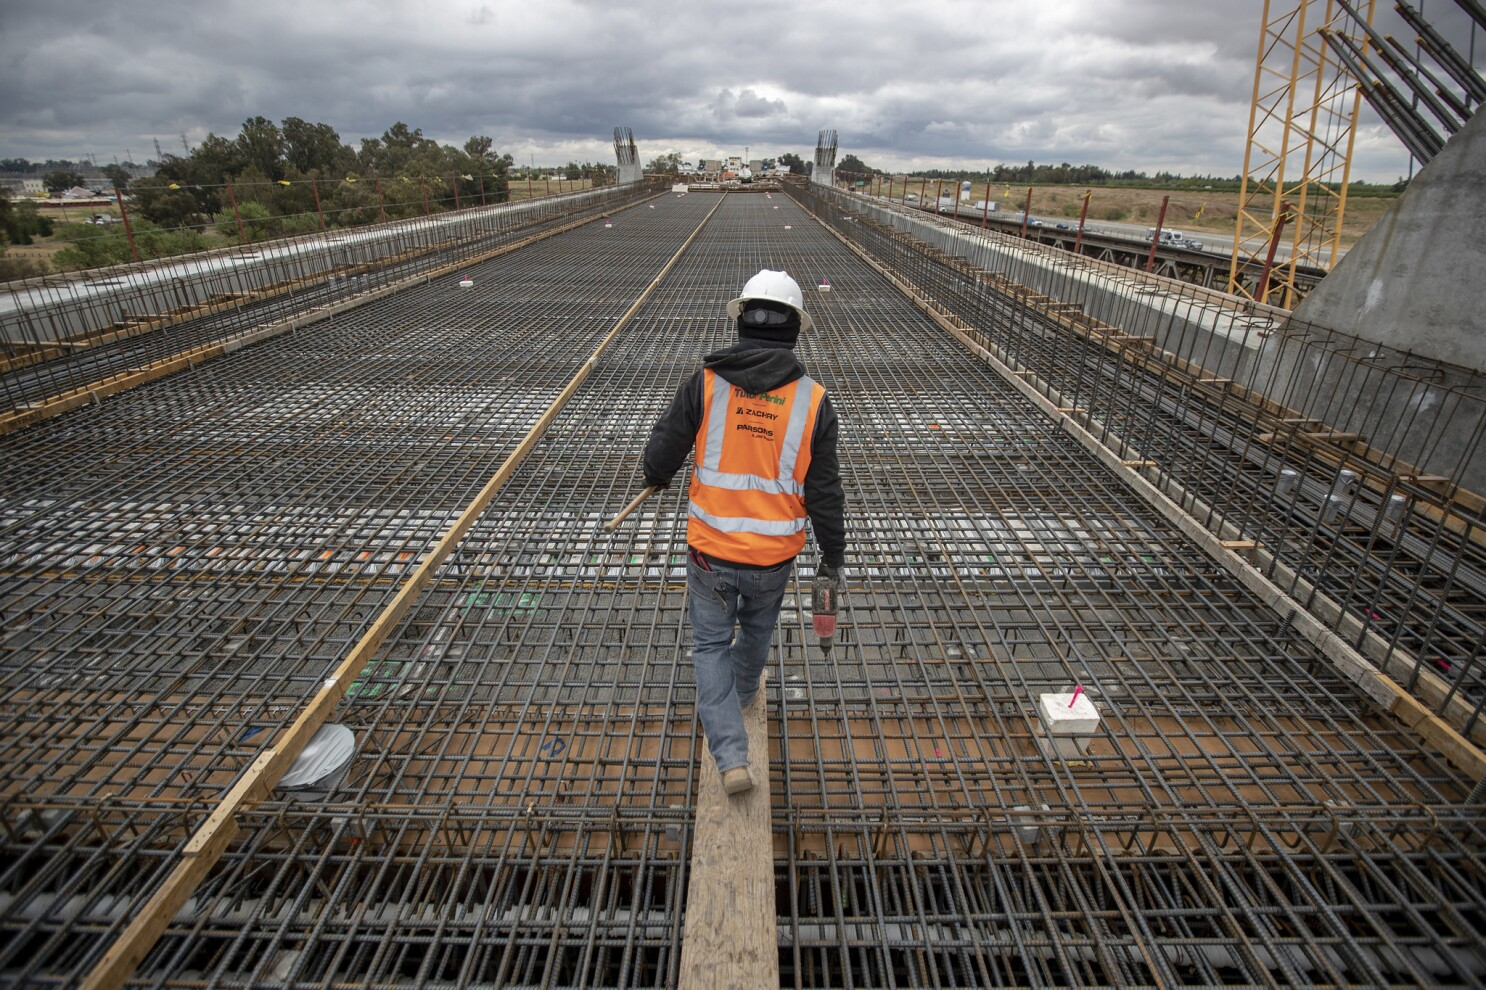 Costs for California's high-speed rail project may increase by $1 8